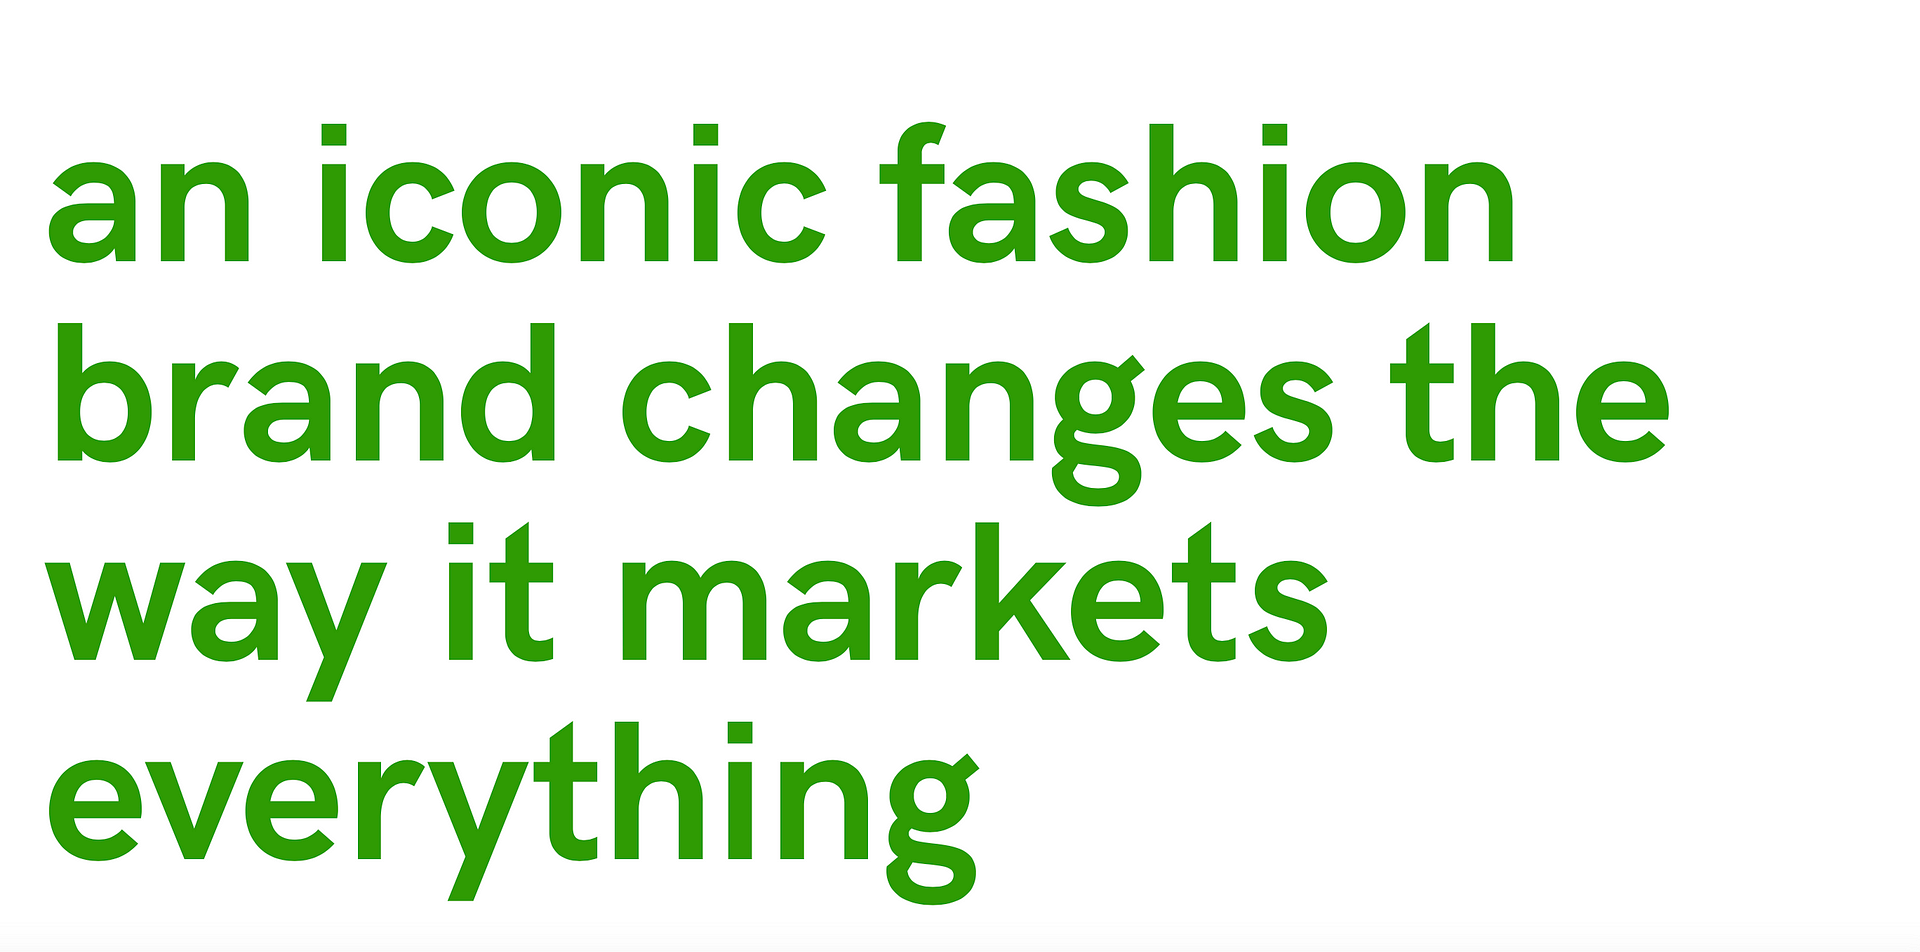 an iconic fashion brand changes the way it markets everything